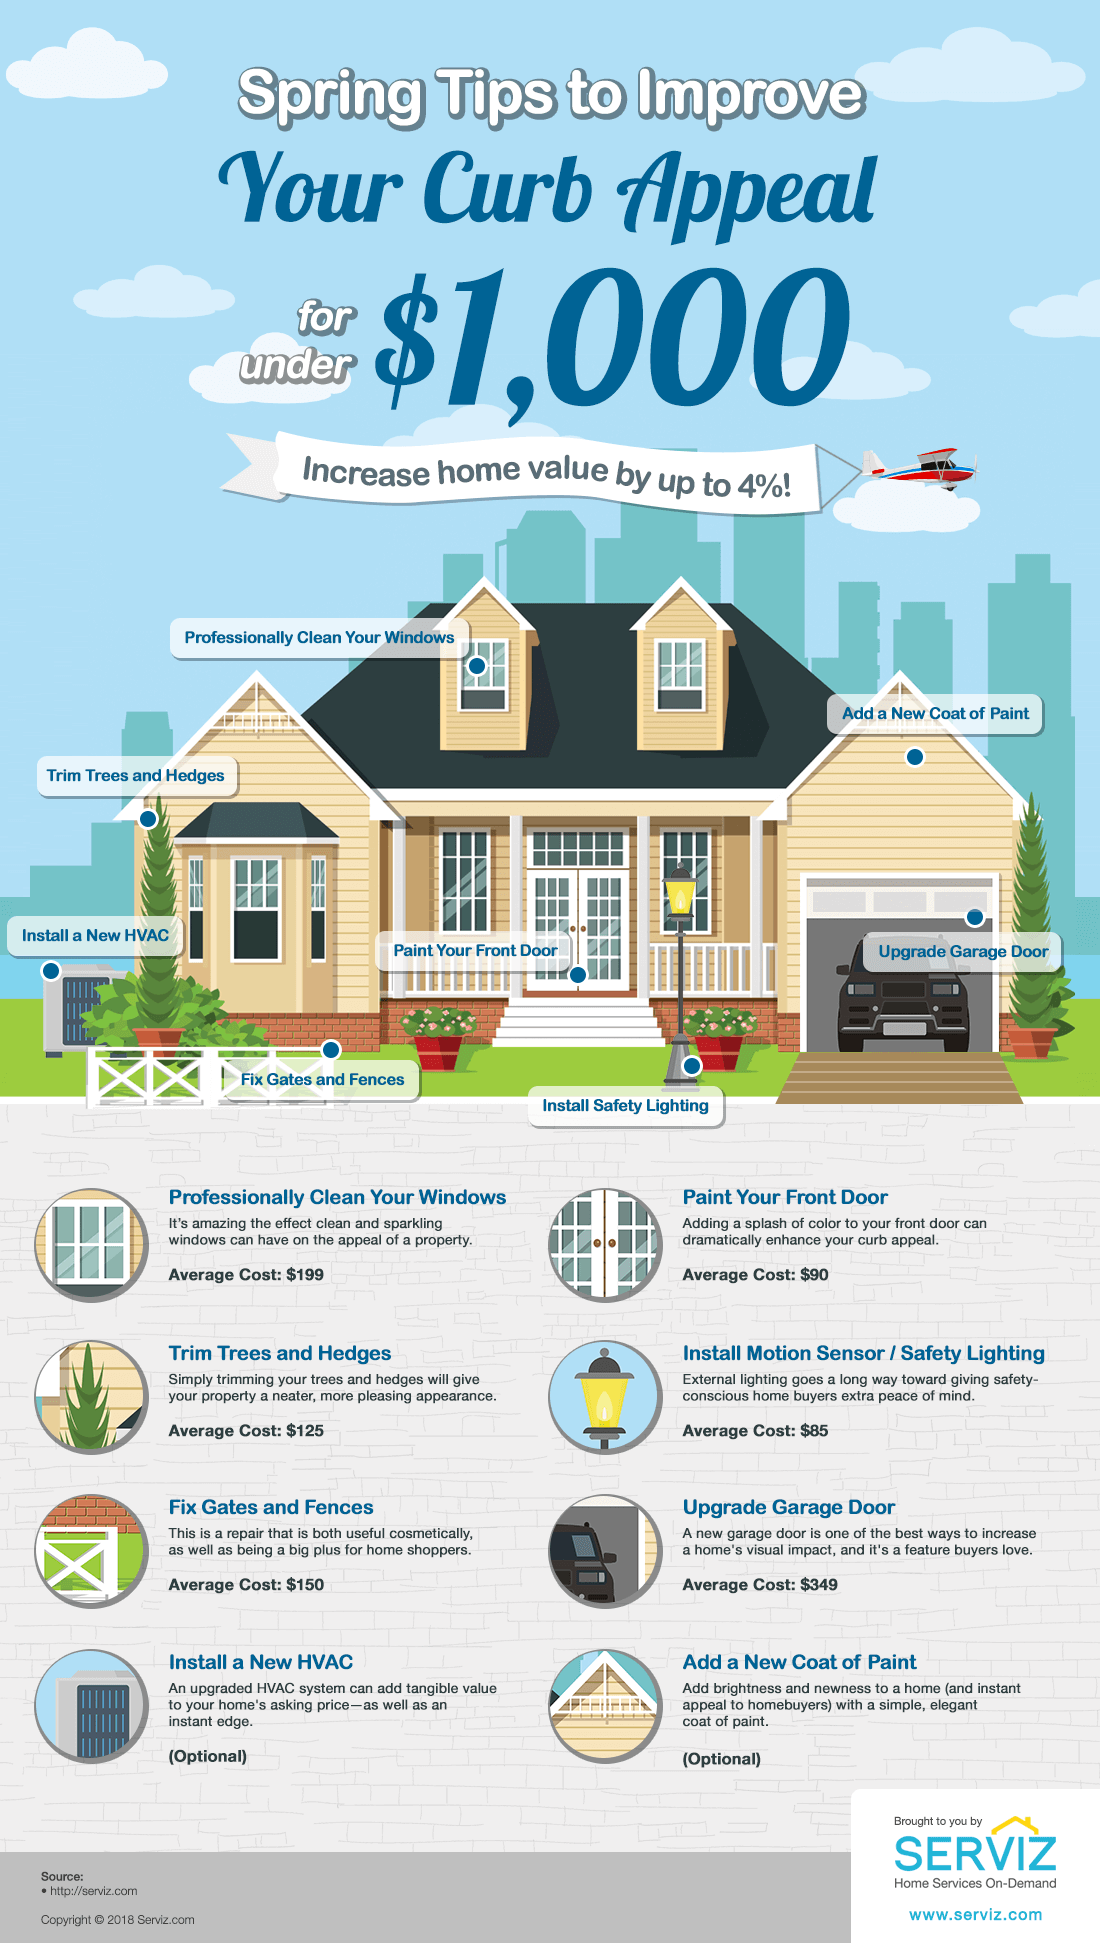 Did You Also Know That Upgrading Your Garage Door And Installing A New Hvac Unit Can Increase Home Value By Up 4